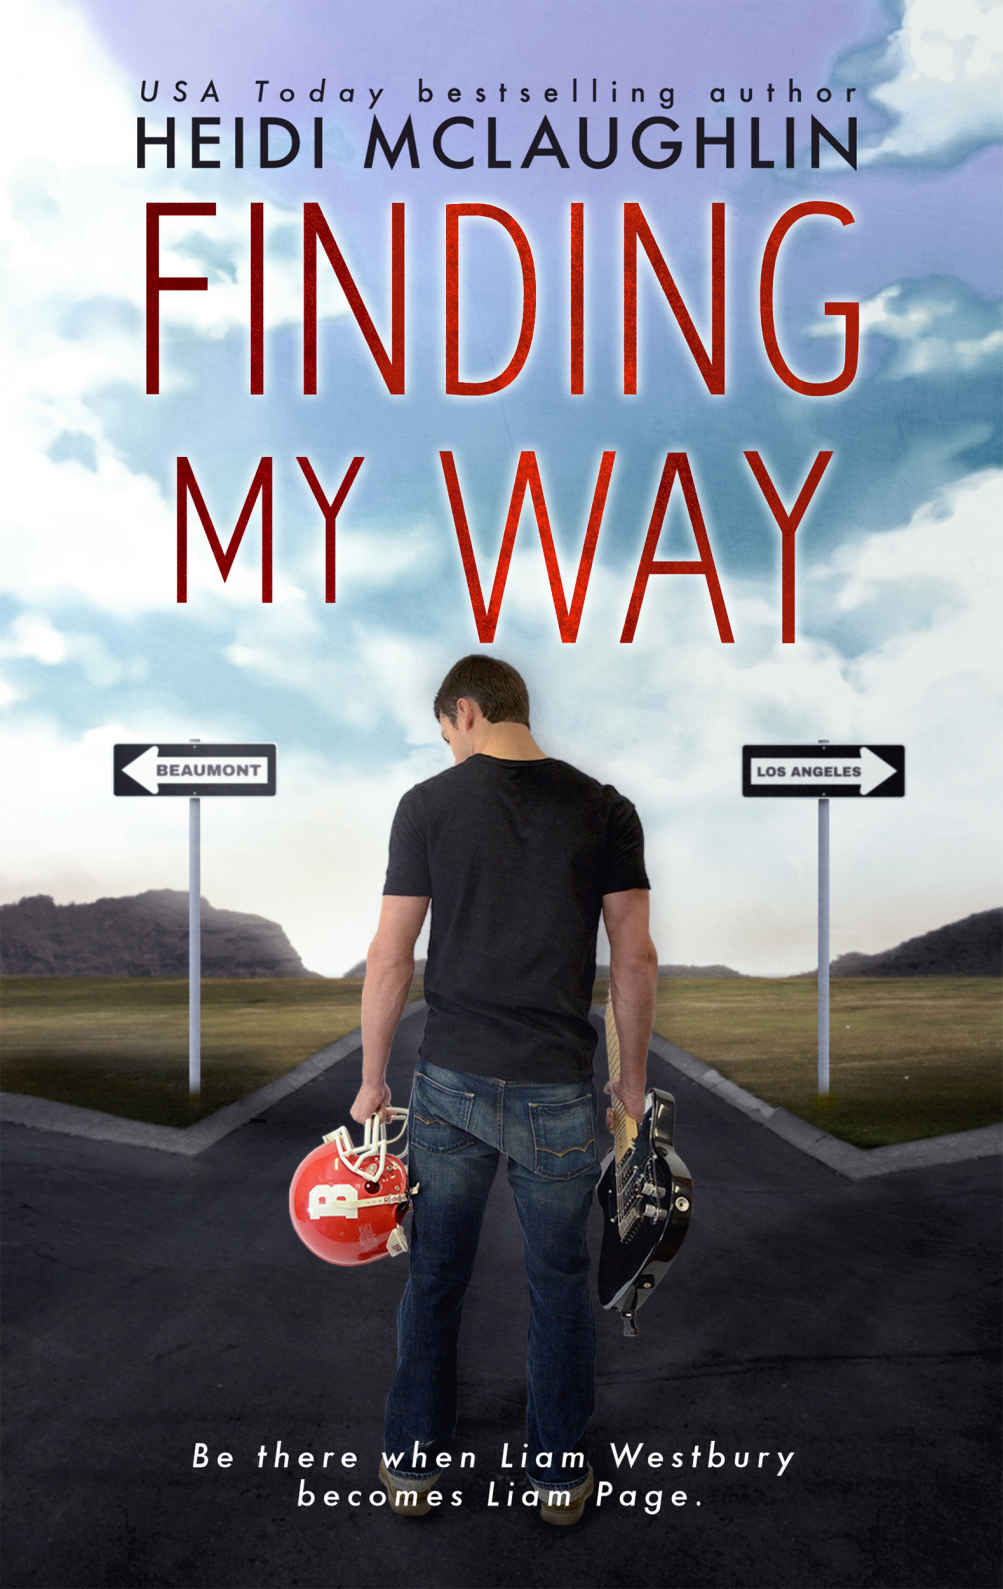 Finding My Way by Heidi McLaughlin